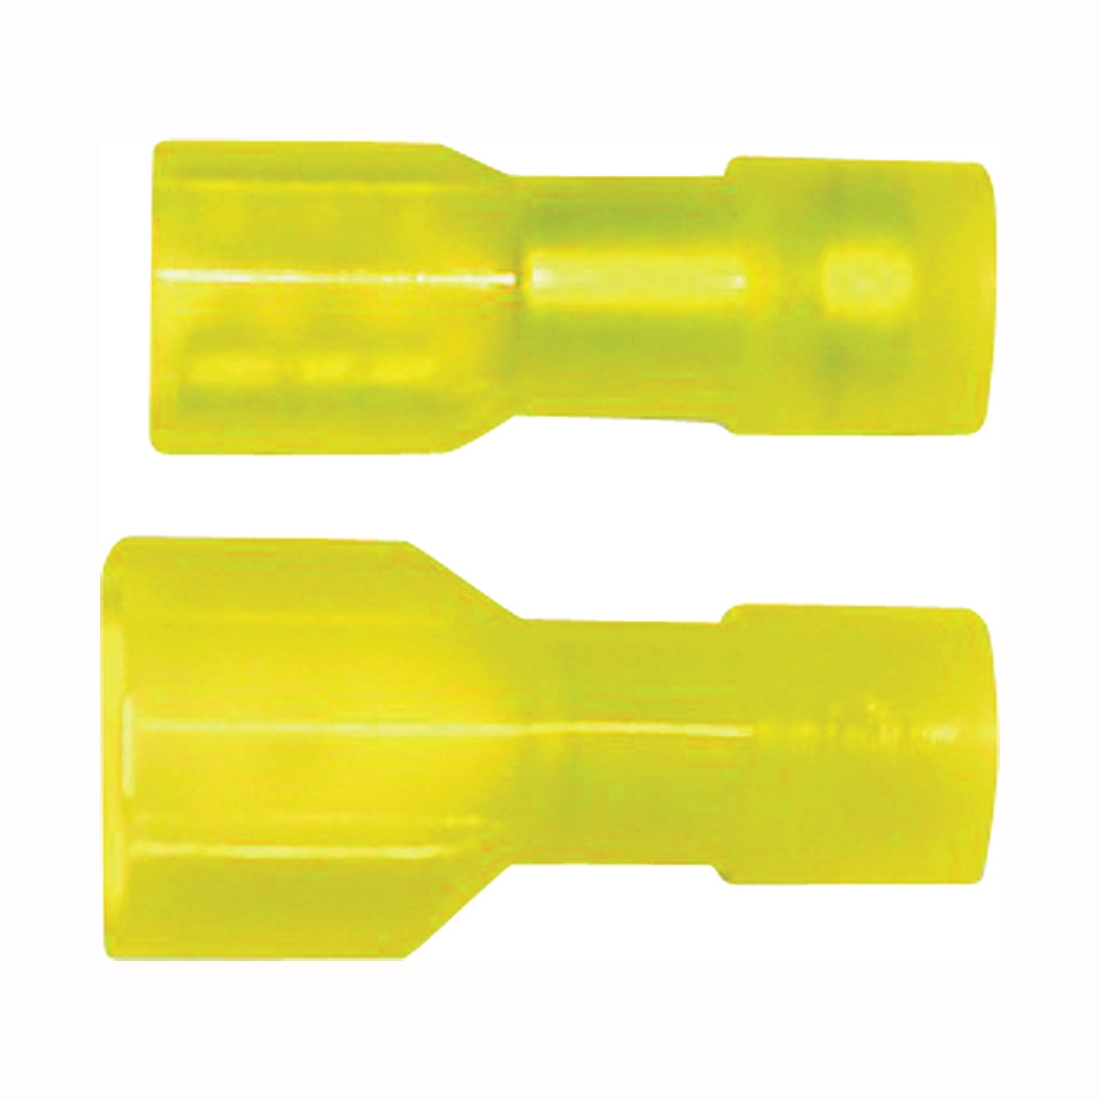 Picture of CALTERM 65556 Quick Connector, Yellow